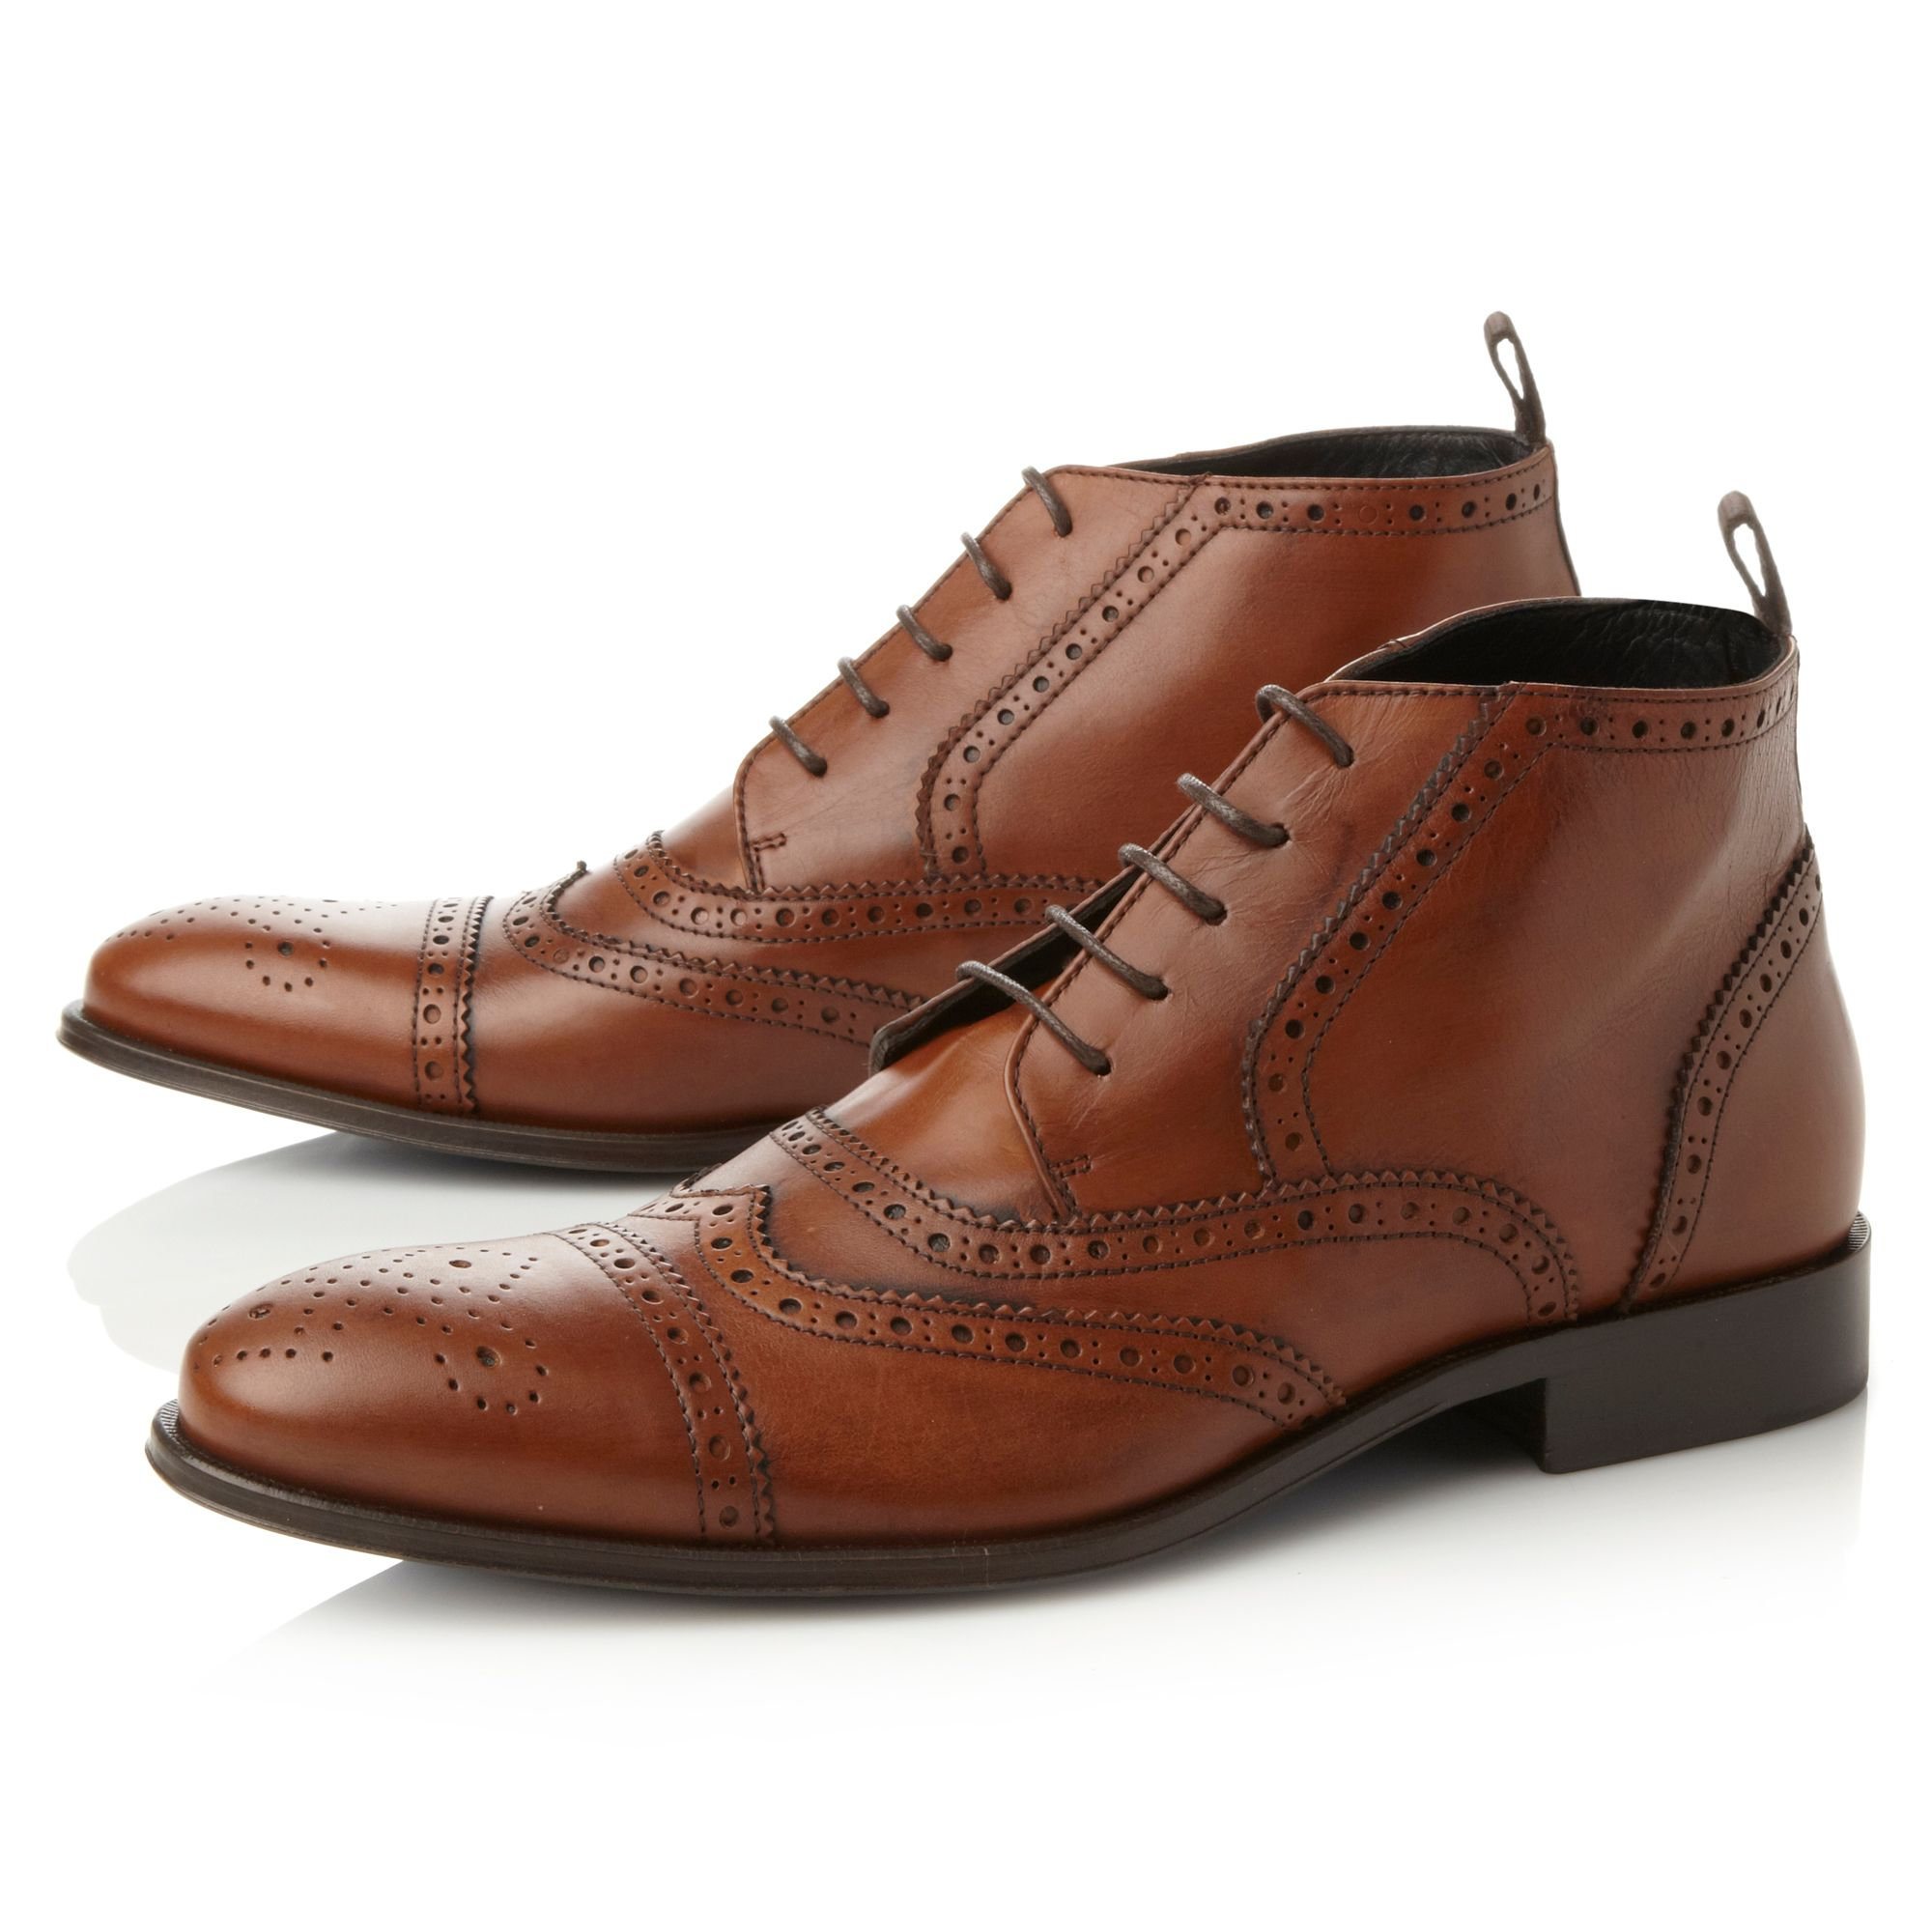 Dandy 1 brogue  lace up boots